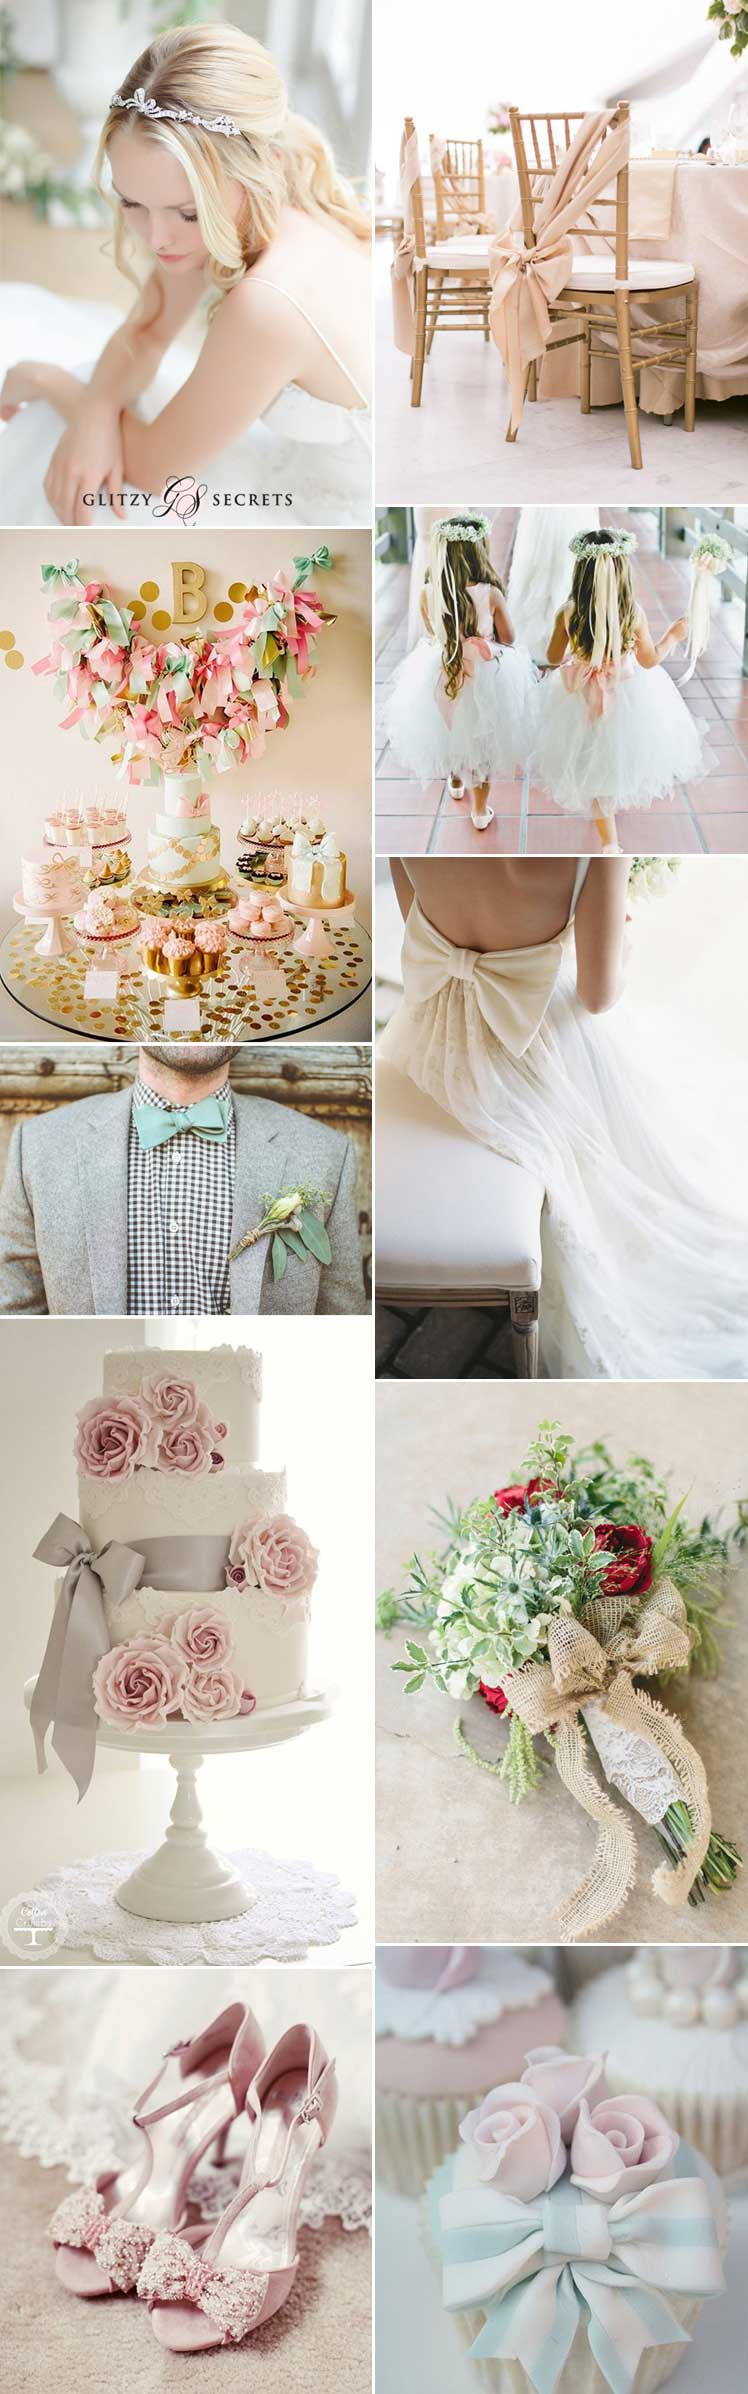 Bow wedding theme ideas and inspiration